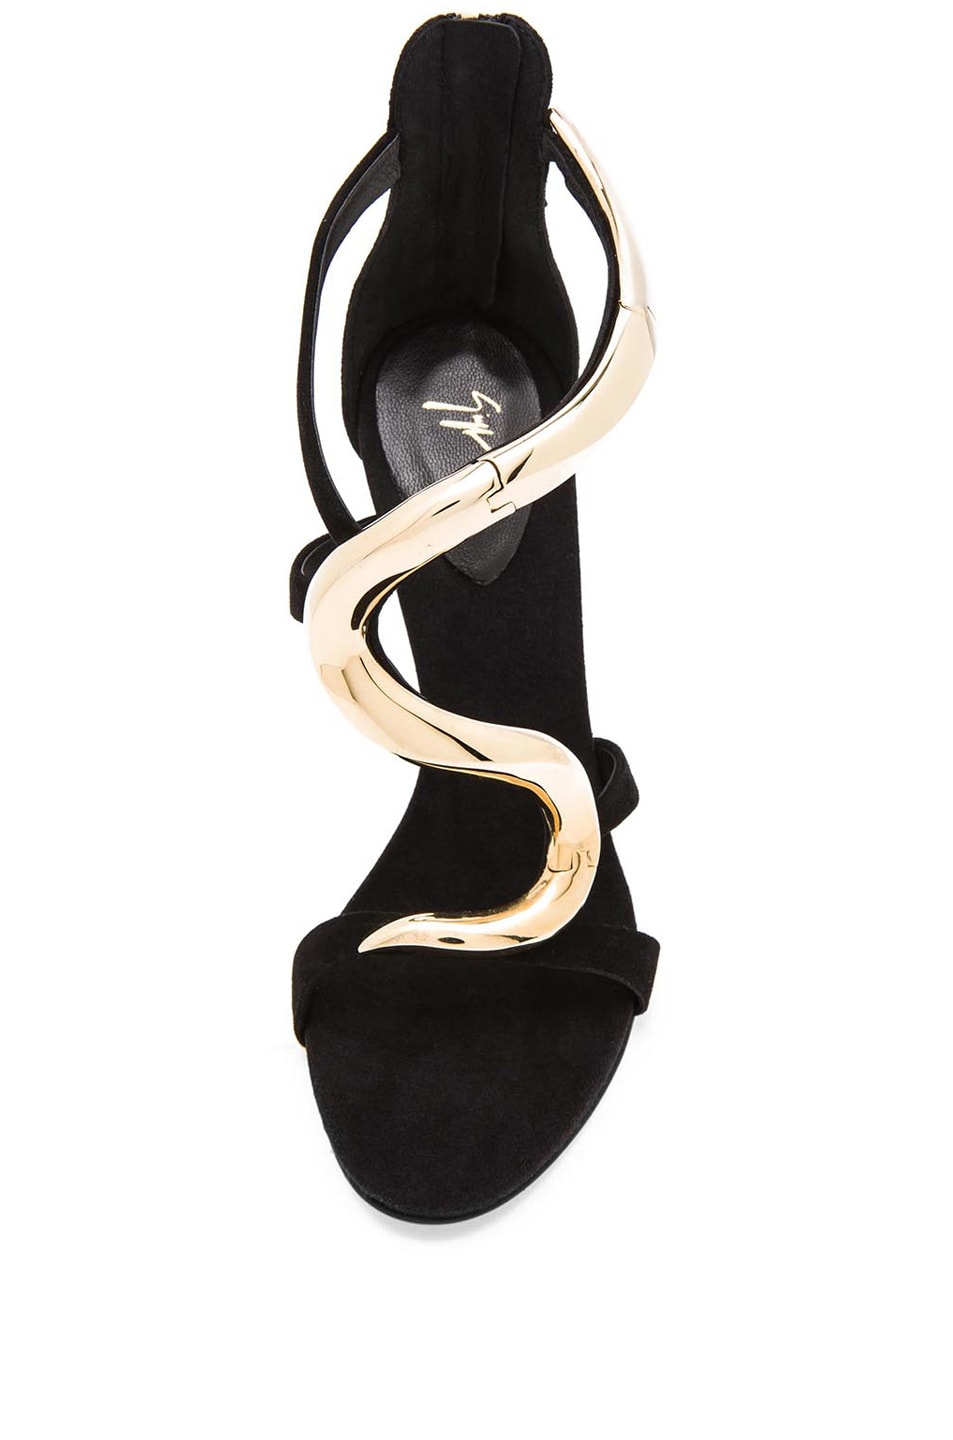 Image 4 of Giuseppe Zanotti Gold Snake Suede Heels in Black Suede